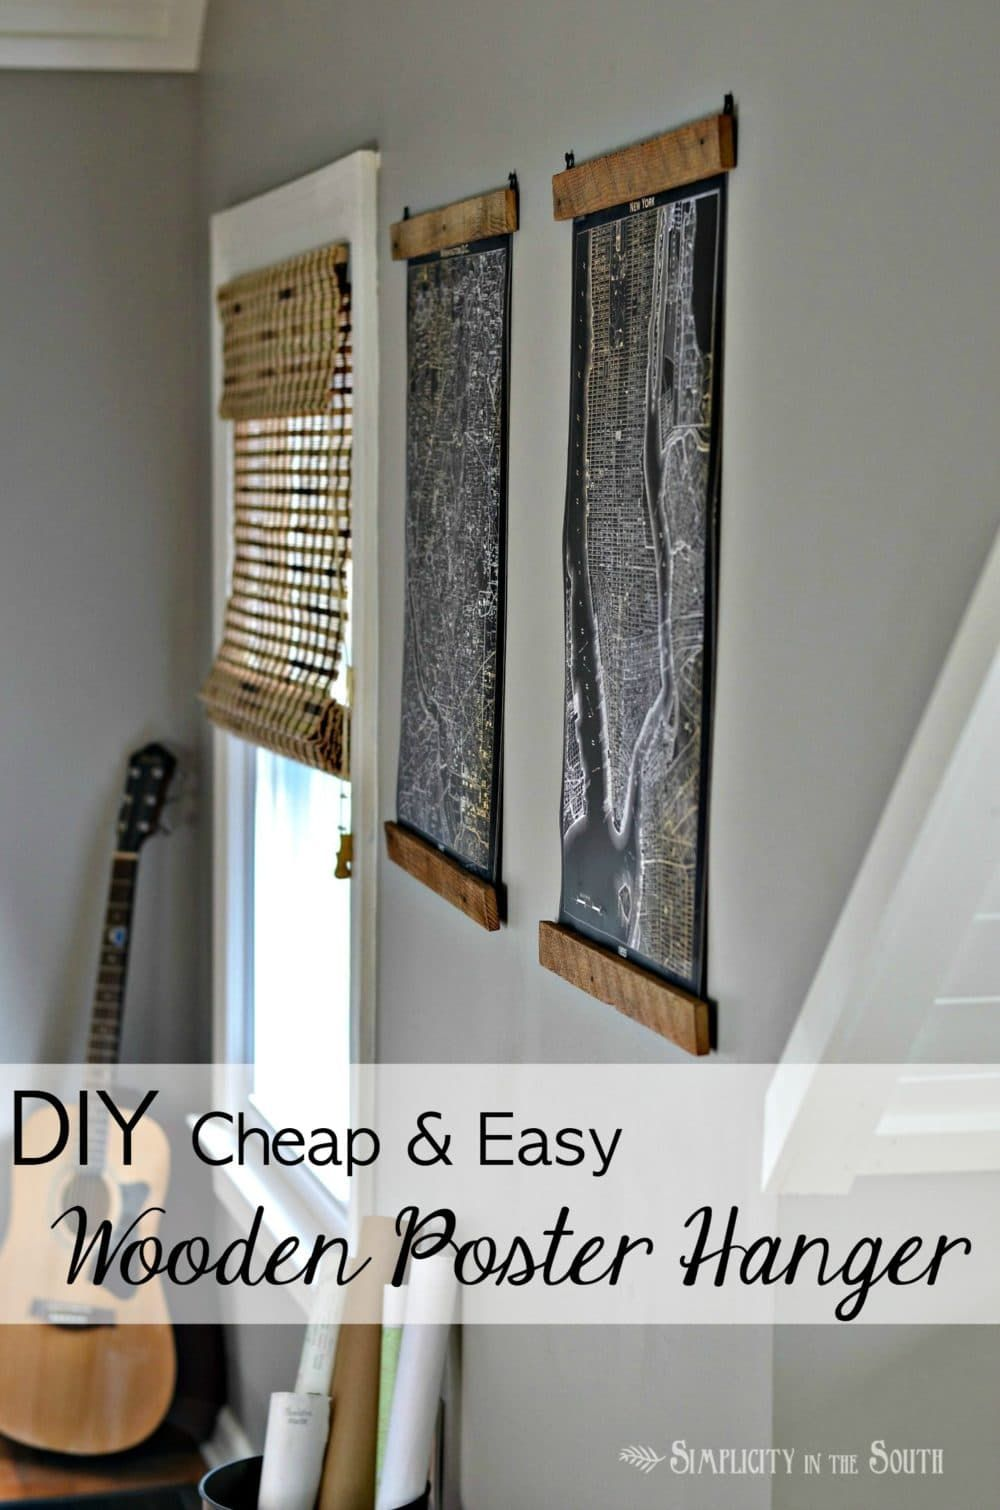 Cheap and Easy DIY Wooden Poster Hangers | Wände